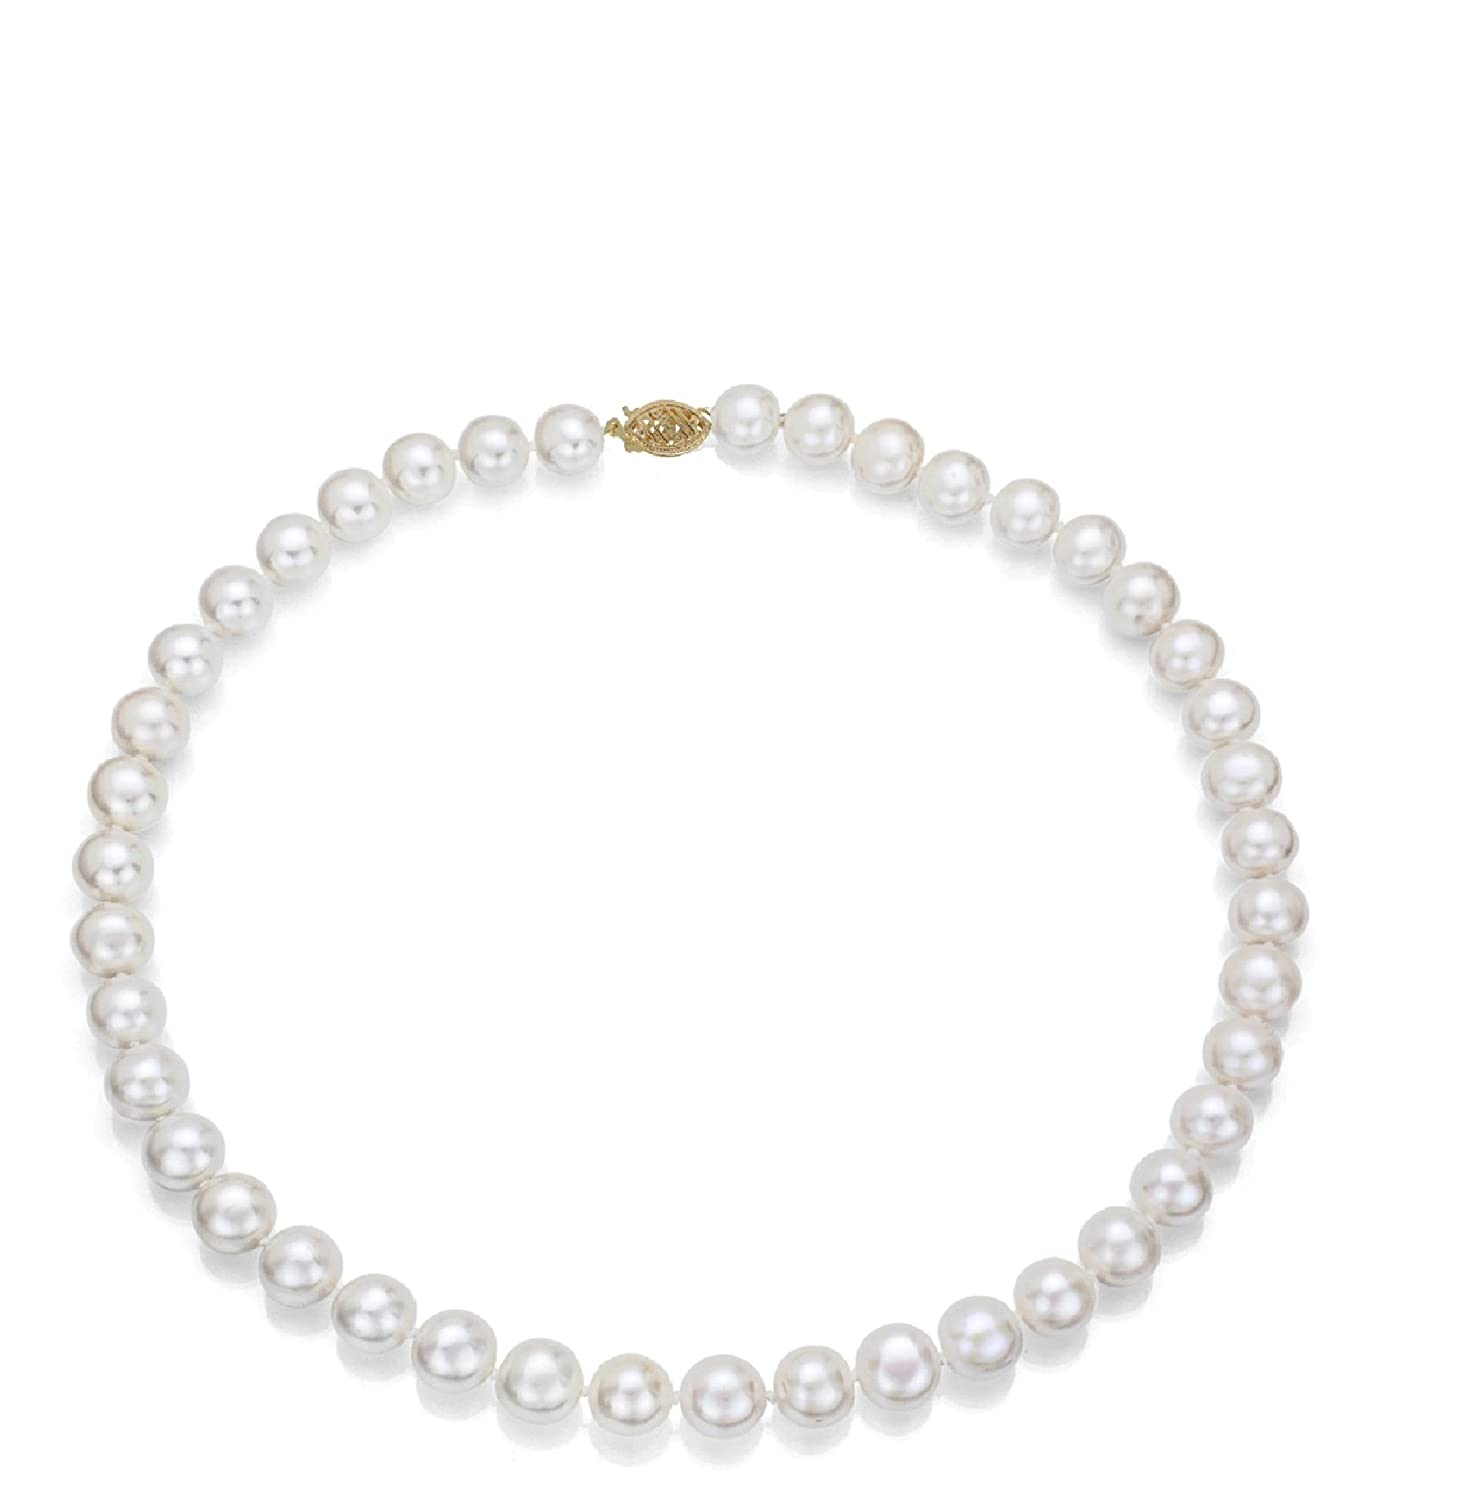 14k Gold 7-8mm Freshwater Cultured AA-Quality Pearl Necklace